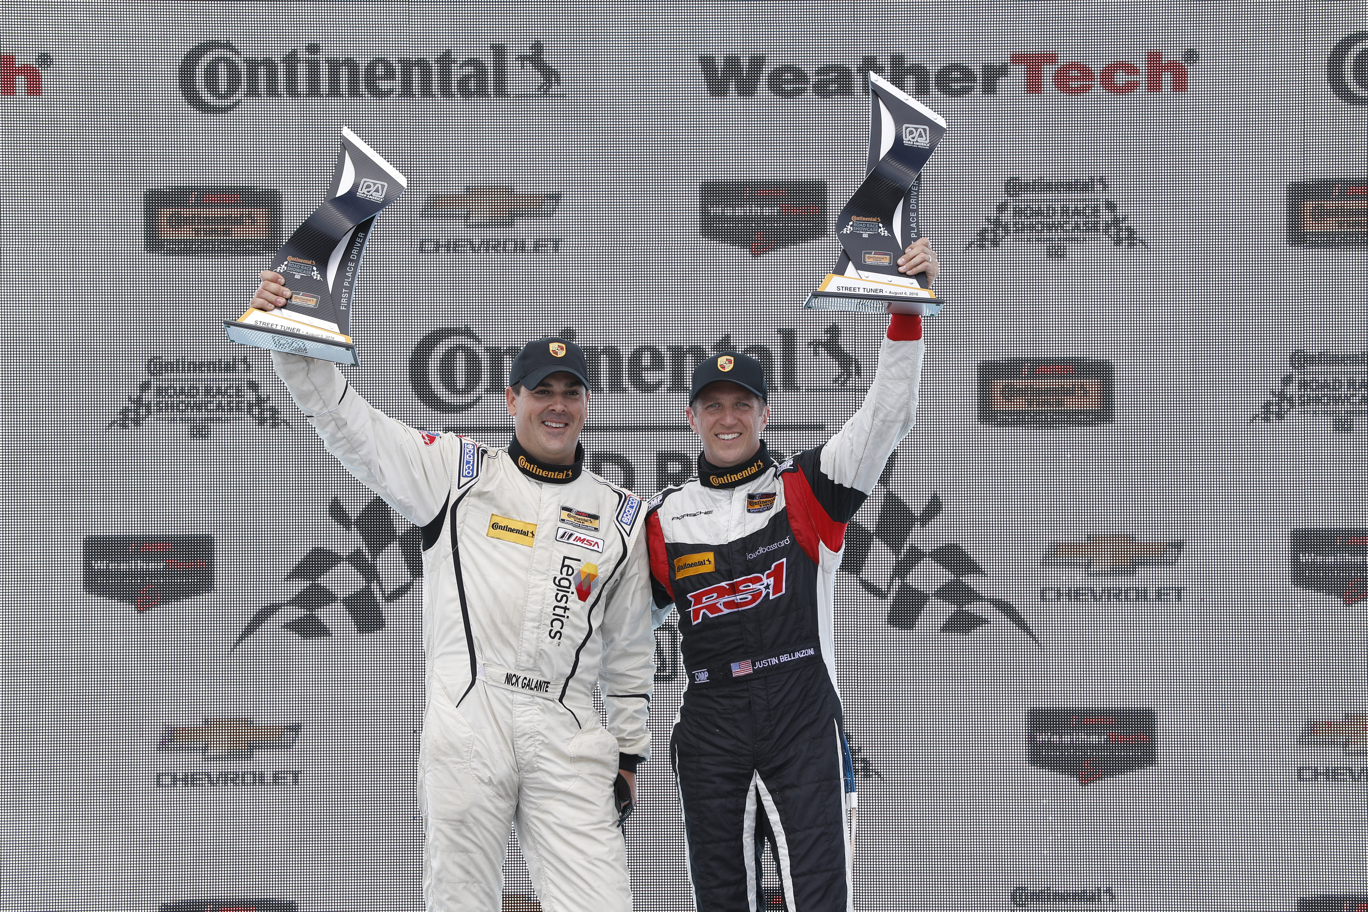 Galante teamed up with Spencer Pumpelly. The duo won the Street Tuner title last season